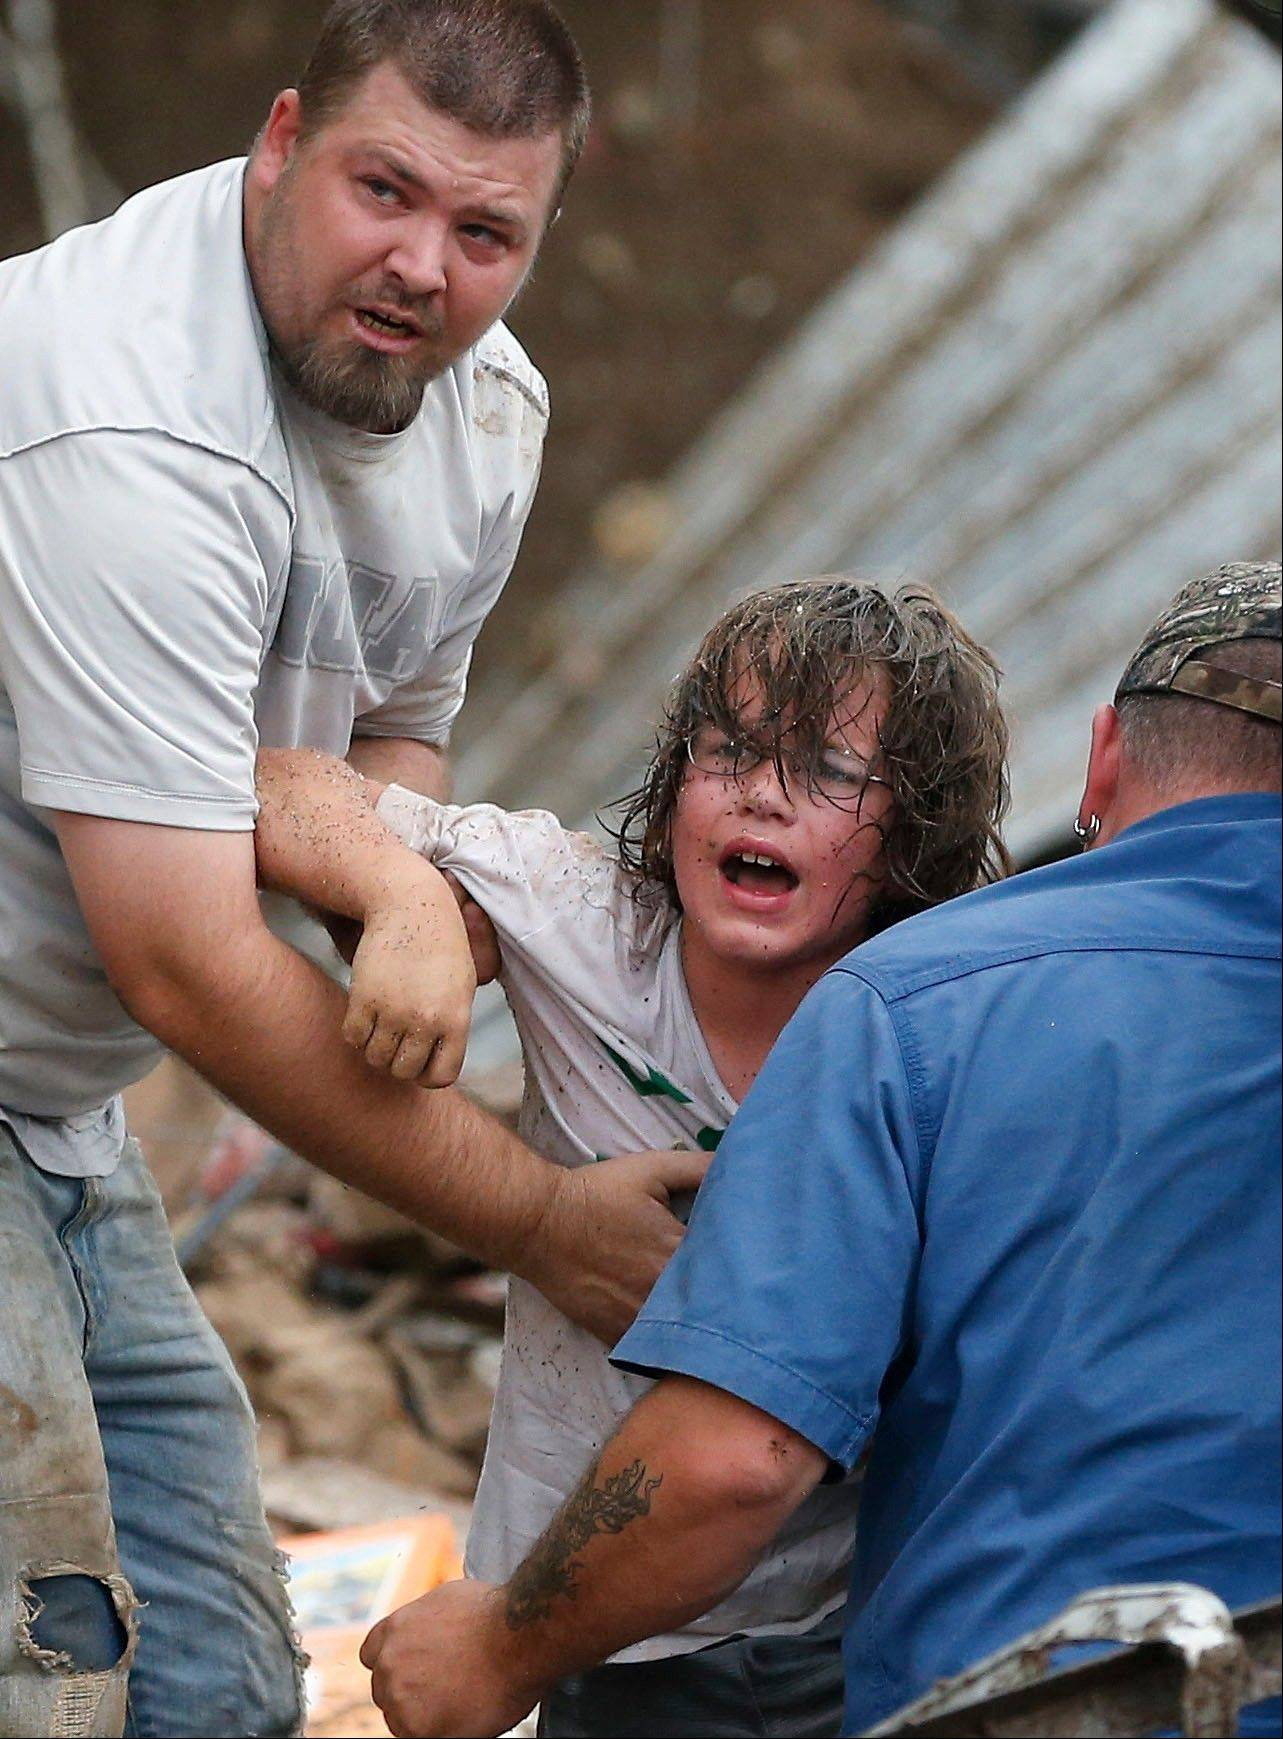 A child calls to his father after being pulled from the rubble of the Tower Plaza Elementary School following a tornado in Moore, Okla., Monday, May 20, 2013. A tornado as much as a mile (1.6 kilometers) wide with winds up to 200 mph (320 kph) roared through the Oklahoma City suburbs Monday, flattening entire neighborhoods, setting buildings on fire and landing a direct blow on the elementary school.